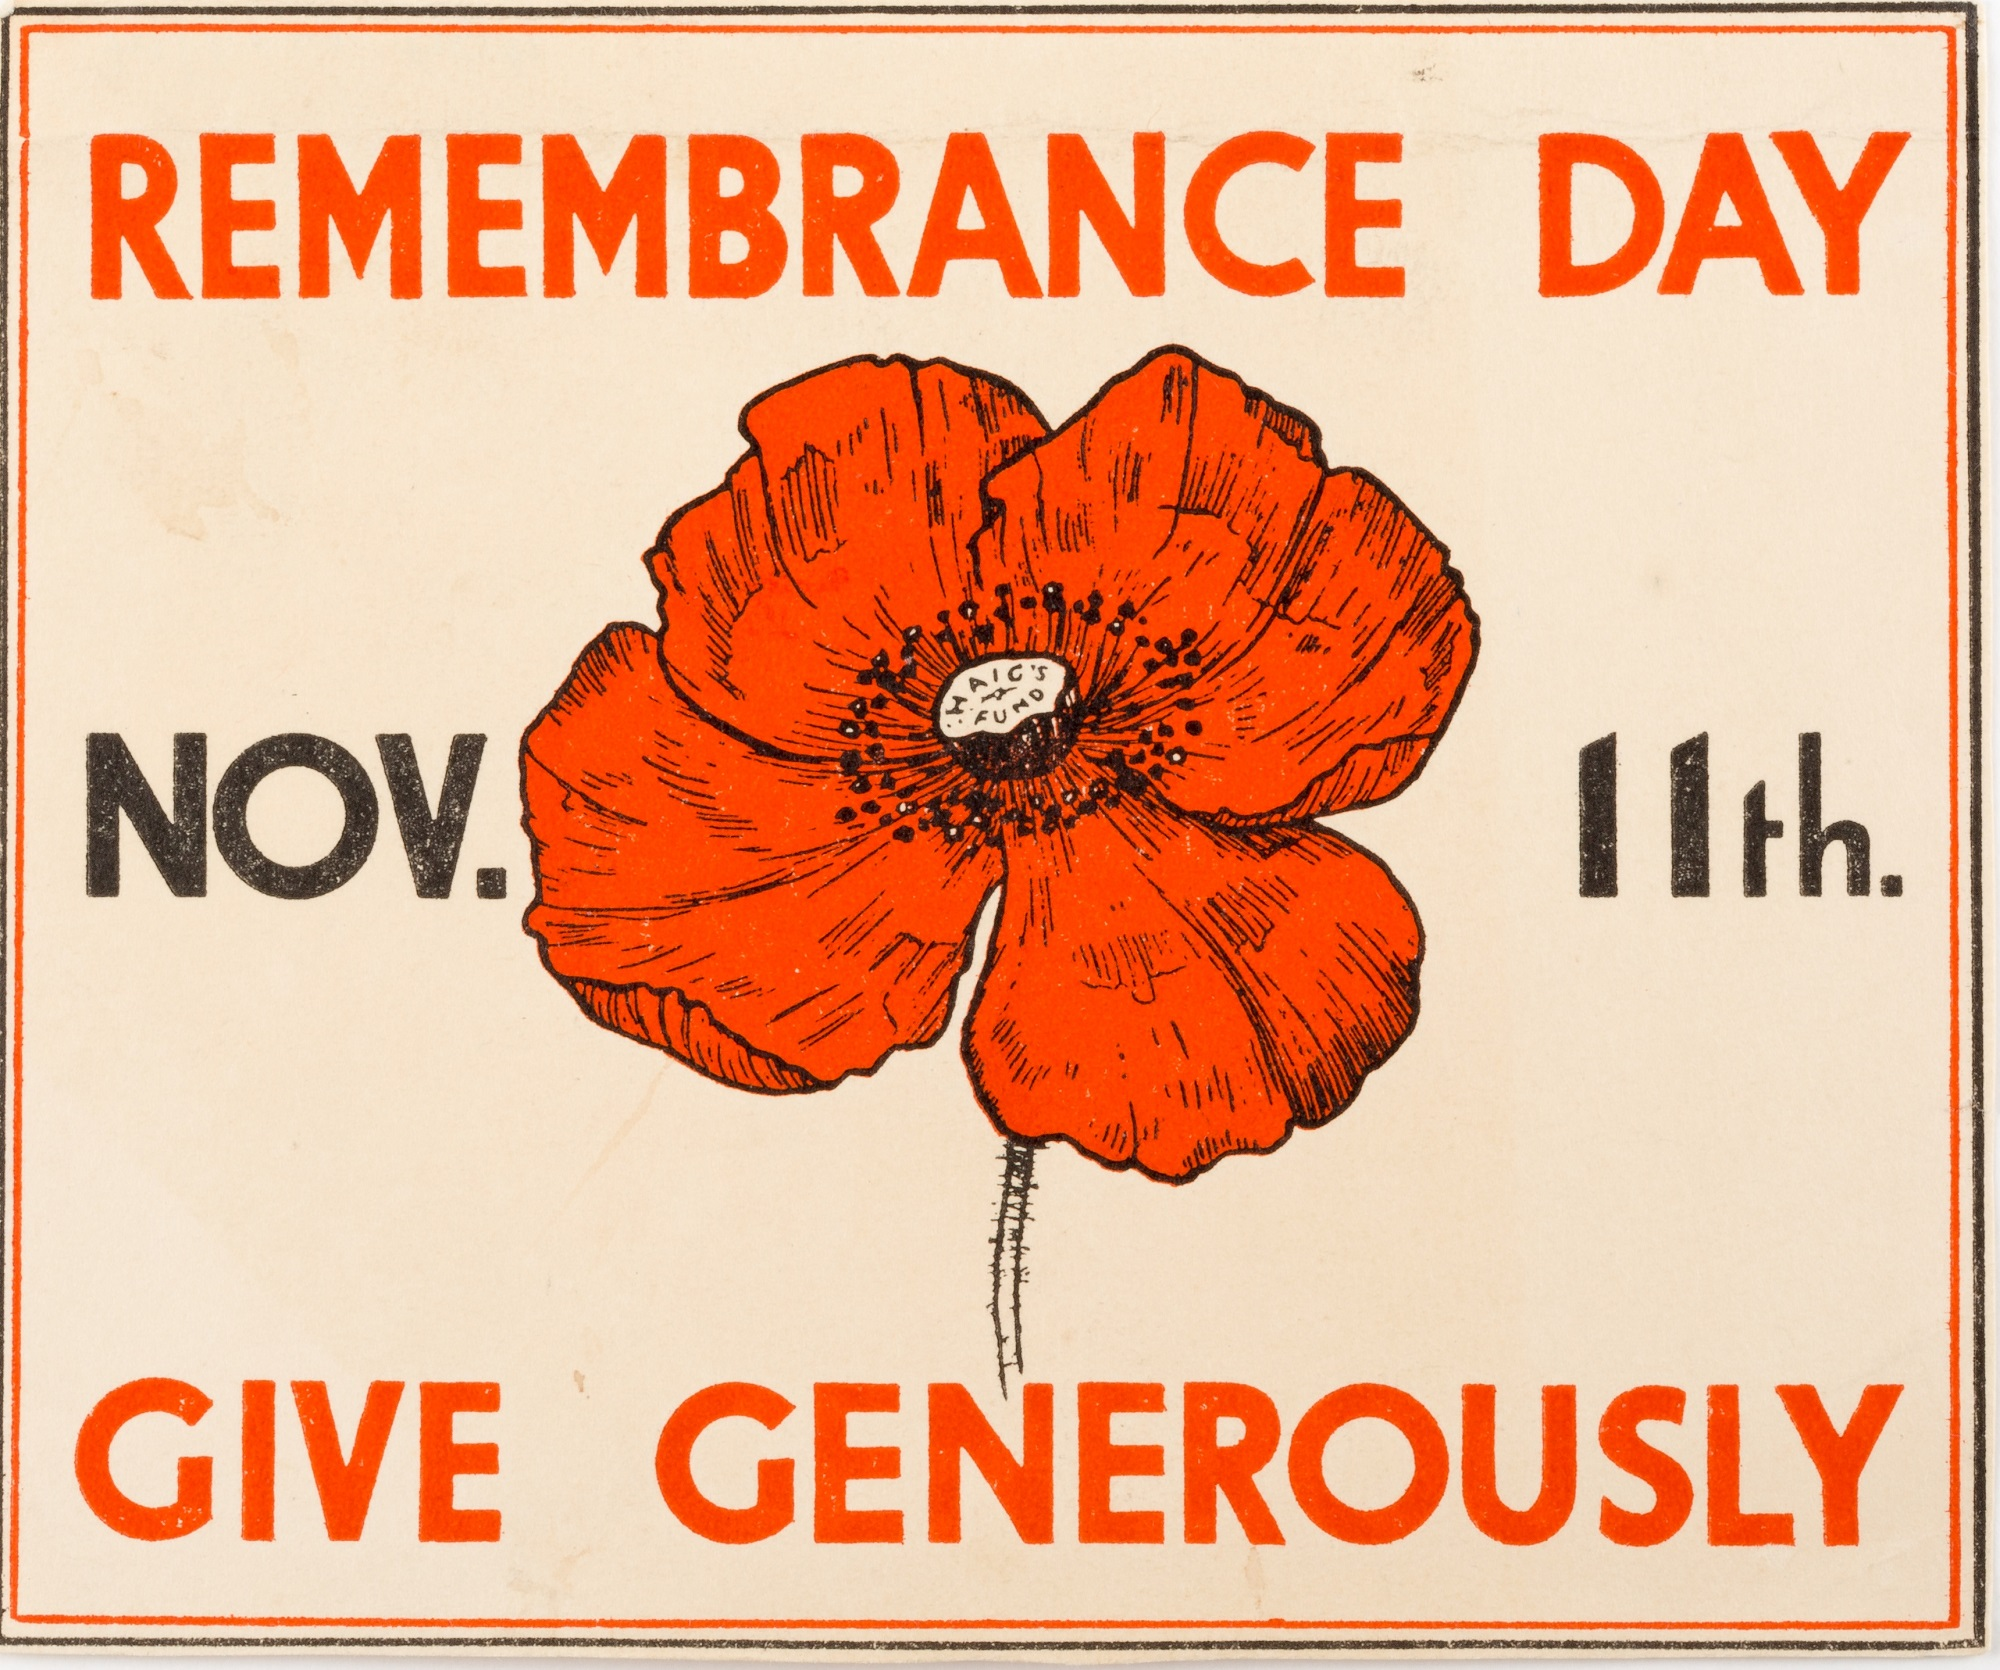 An advertisement card for Remembrance Day, saying, 'Remembrance Day, Nov. 11th, Give Generously'. This was used locally in Walton by Mrs. Howard while collecting for the Legion.